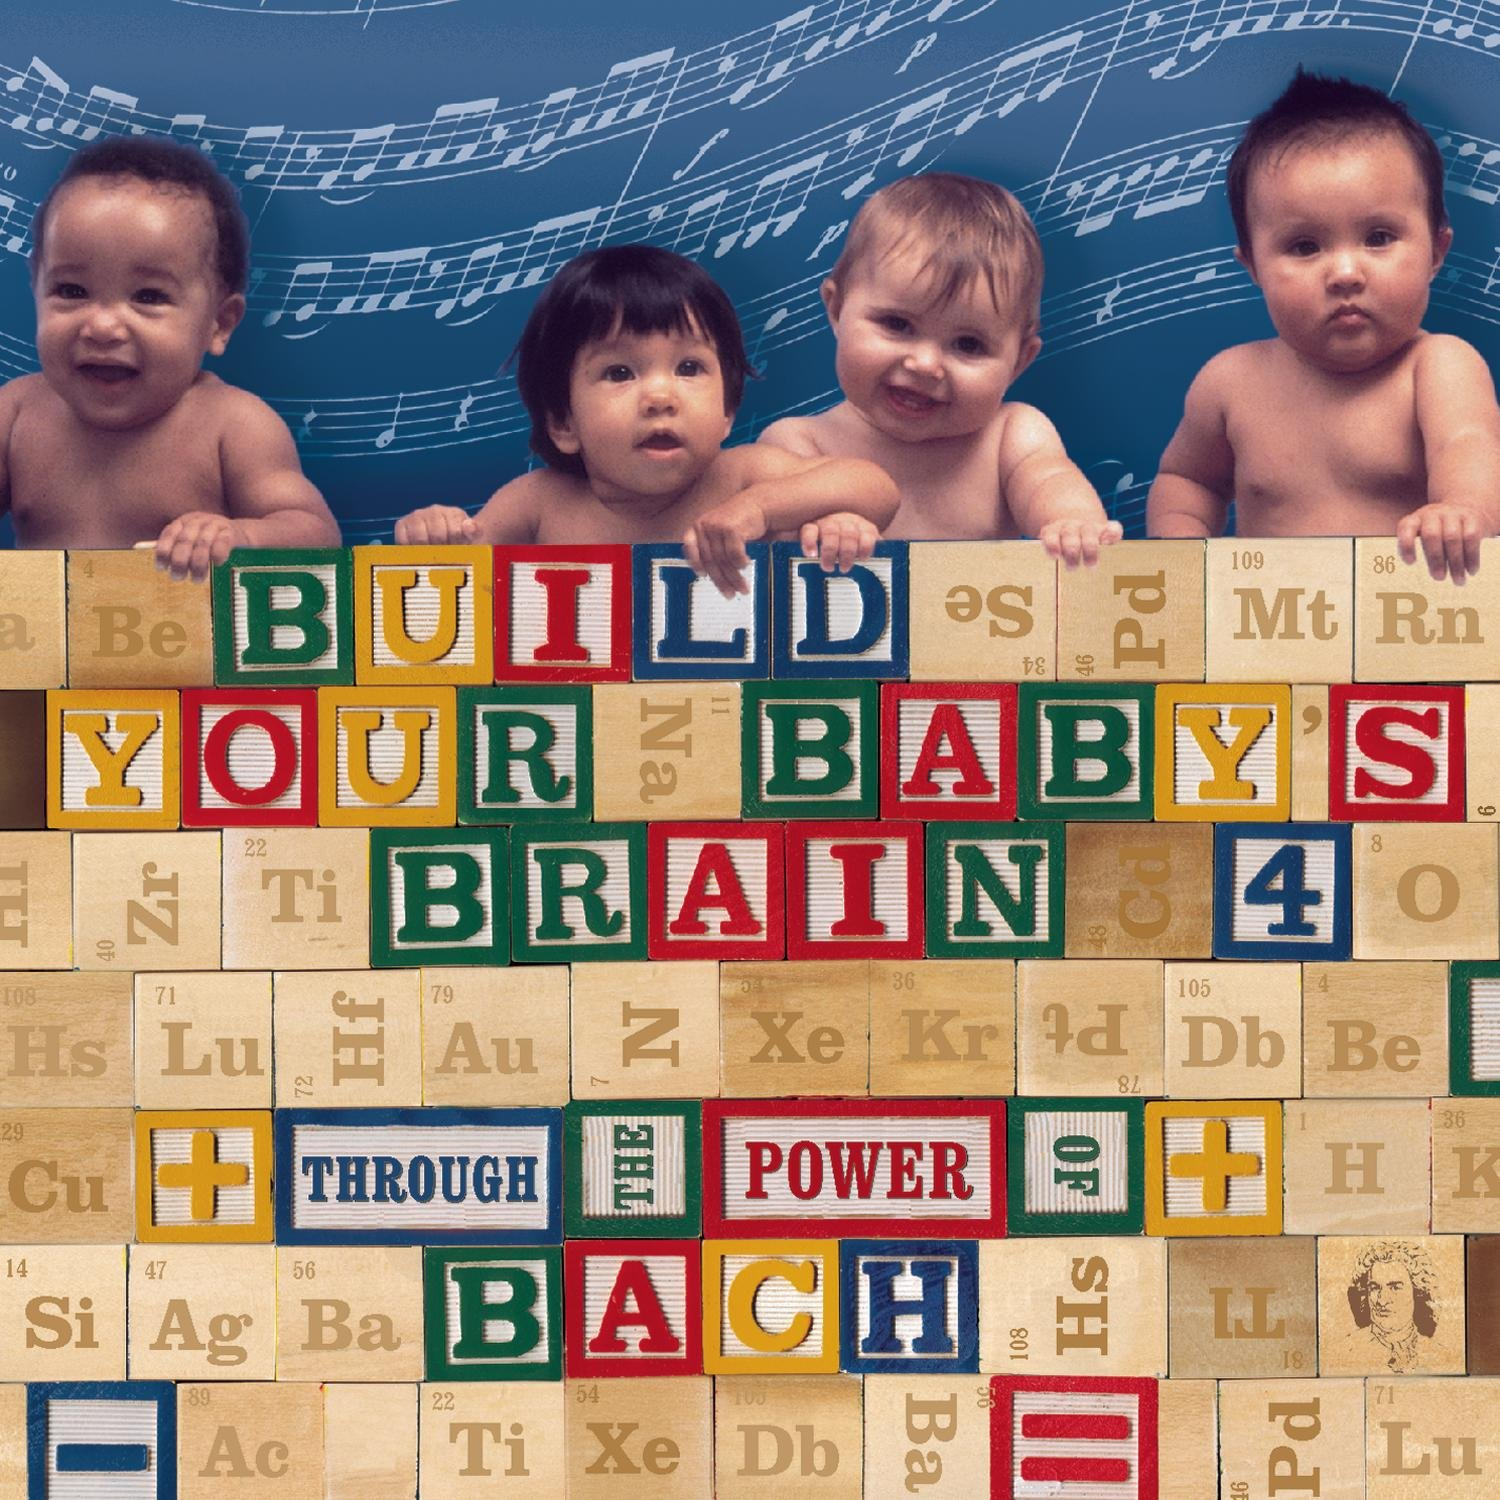 Build Your Baby's Brain Vol. 4 - Through the Power of Bach by Alliance